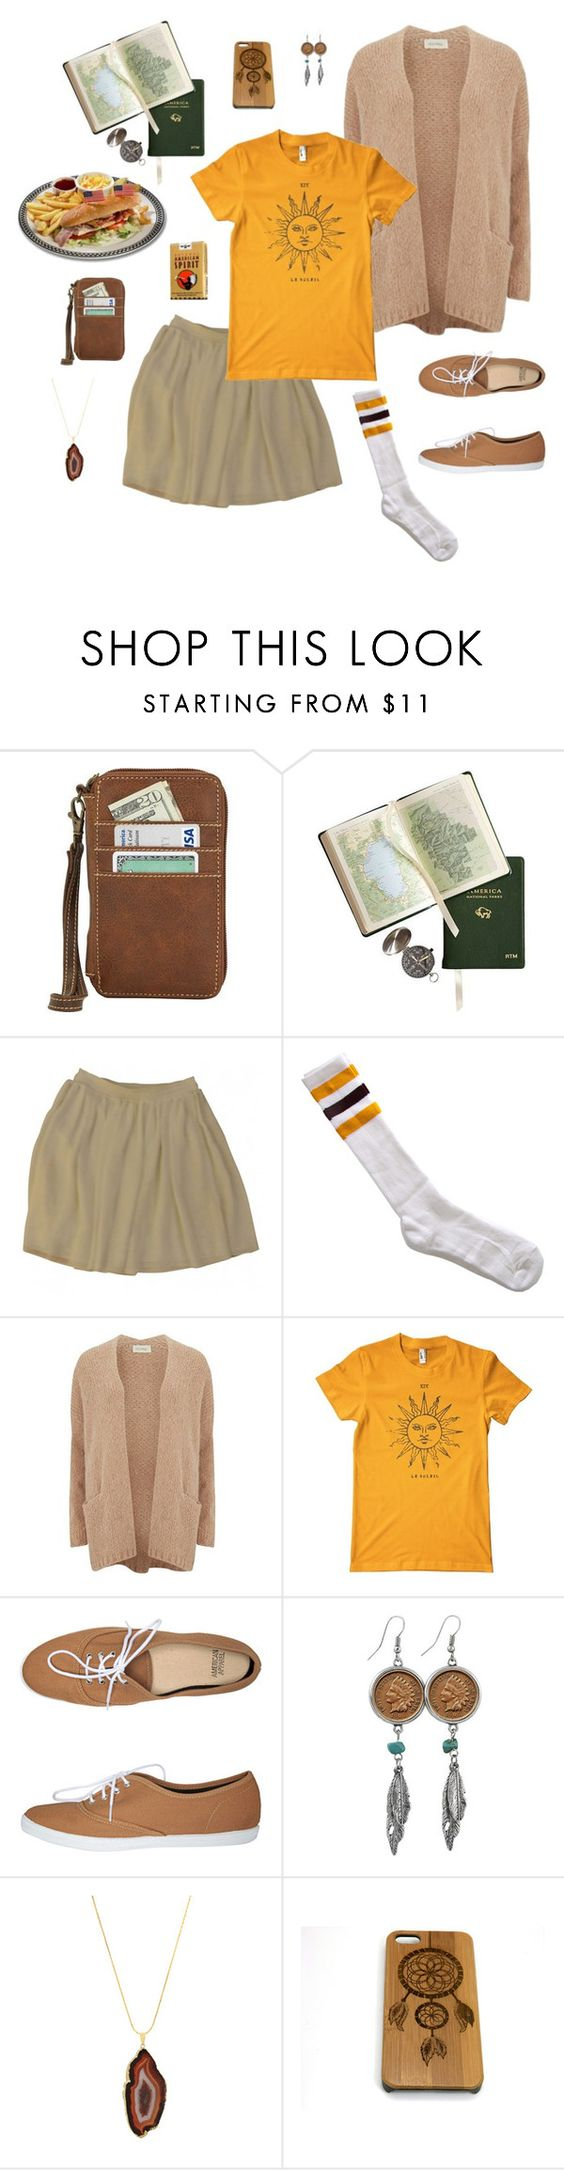 """Untitled #905"" by ninfodora ❤ liked on Polyvore featuring American Apparel, American Vintage and American Coin Treasures"